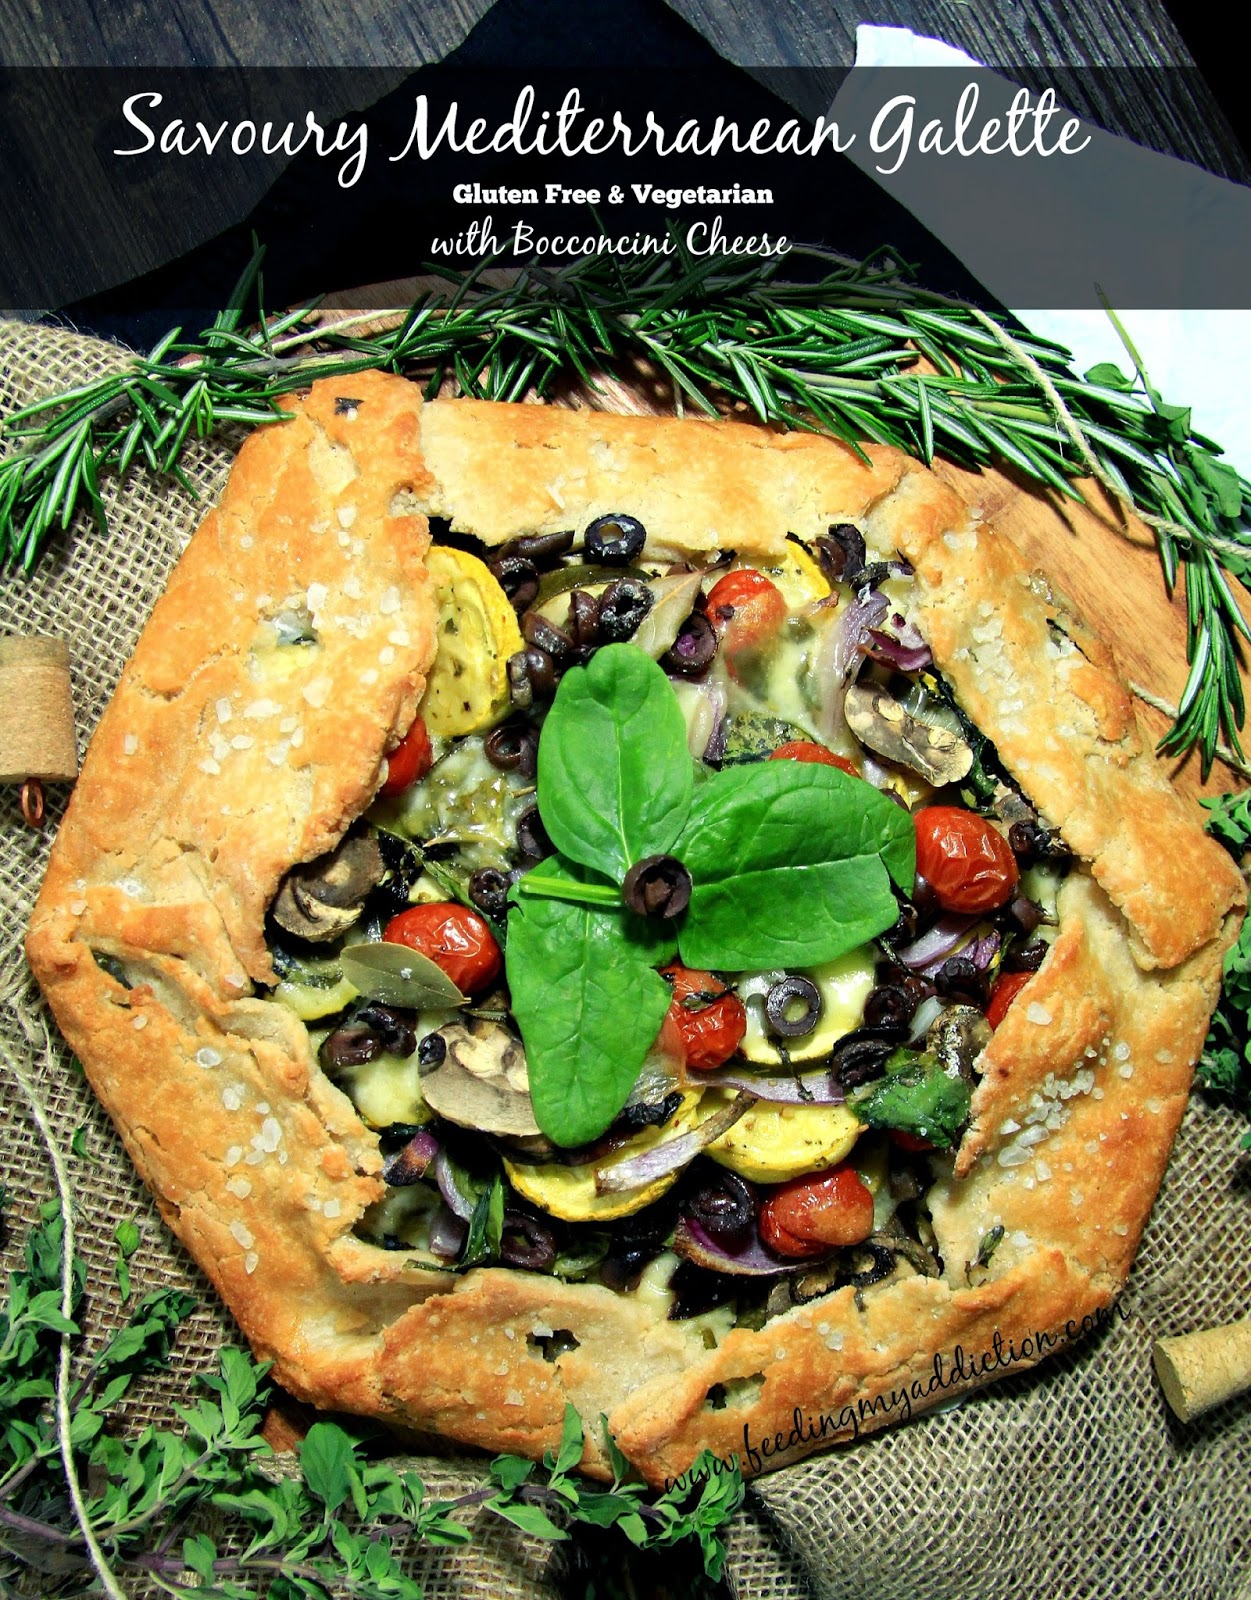 ... My Addiction: Savoury Mediterranean Galette with Bocconcini Cheese